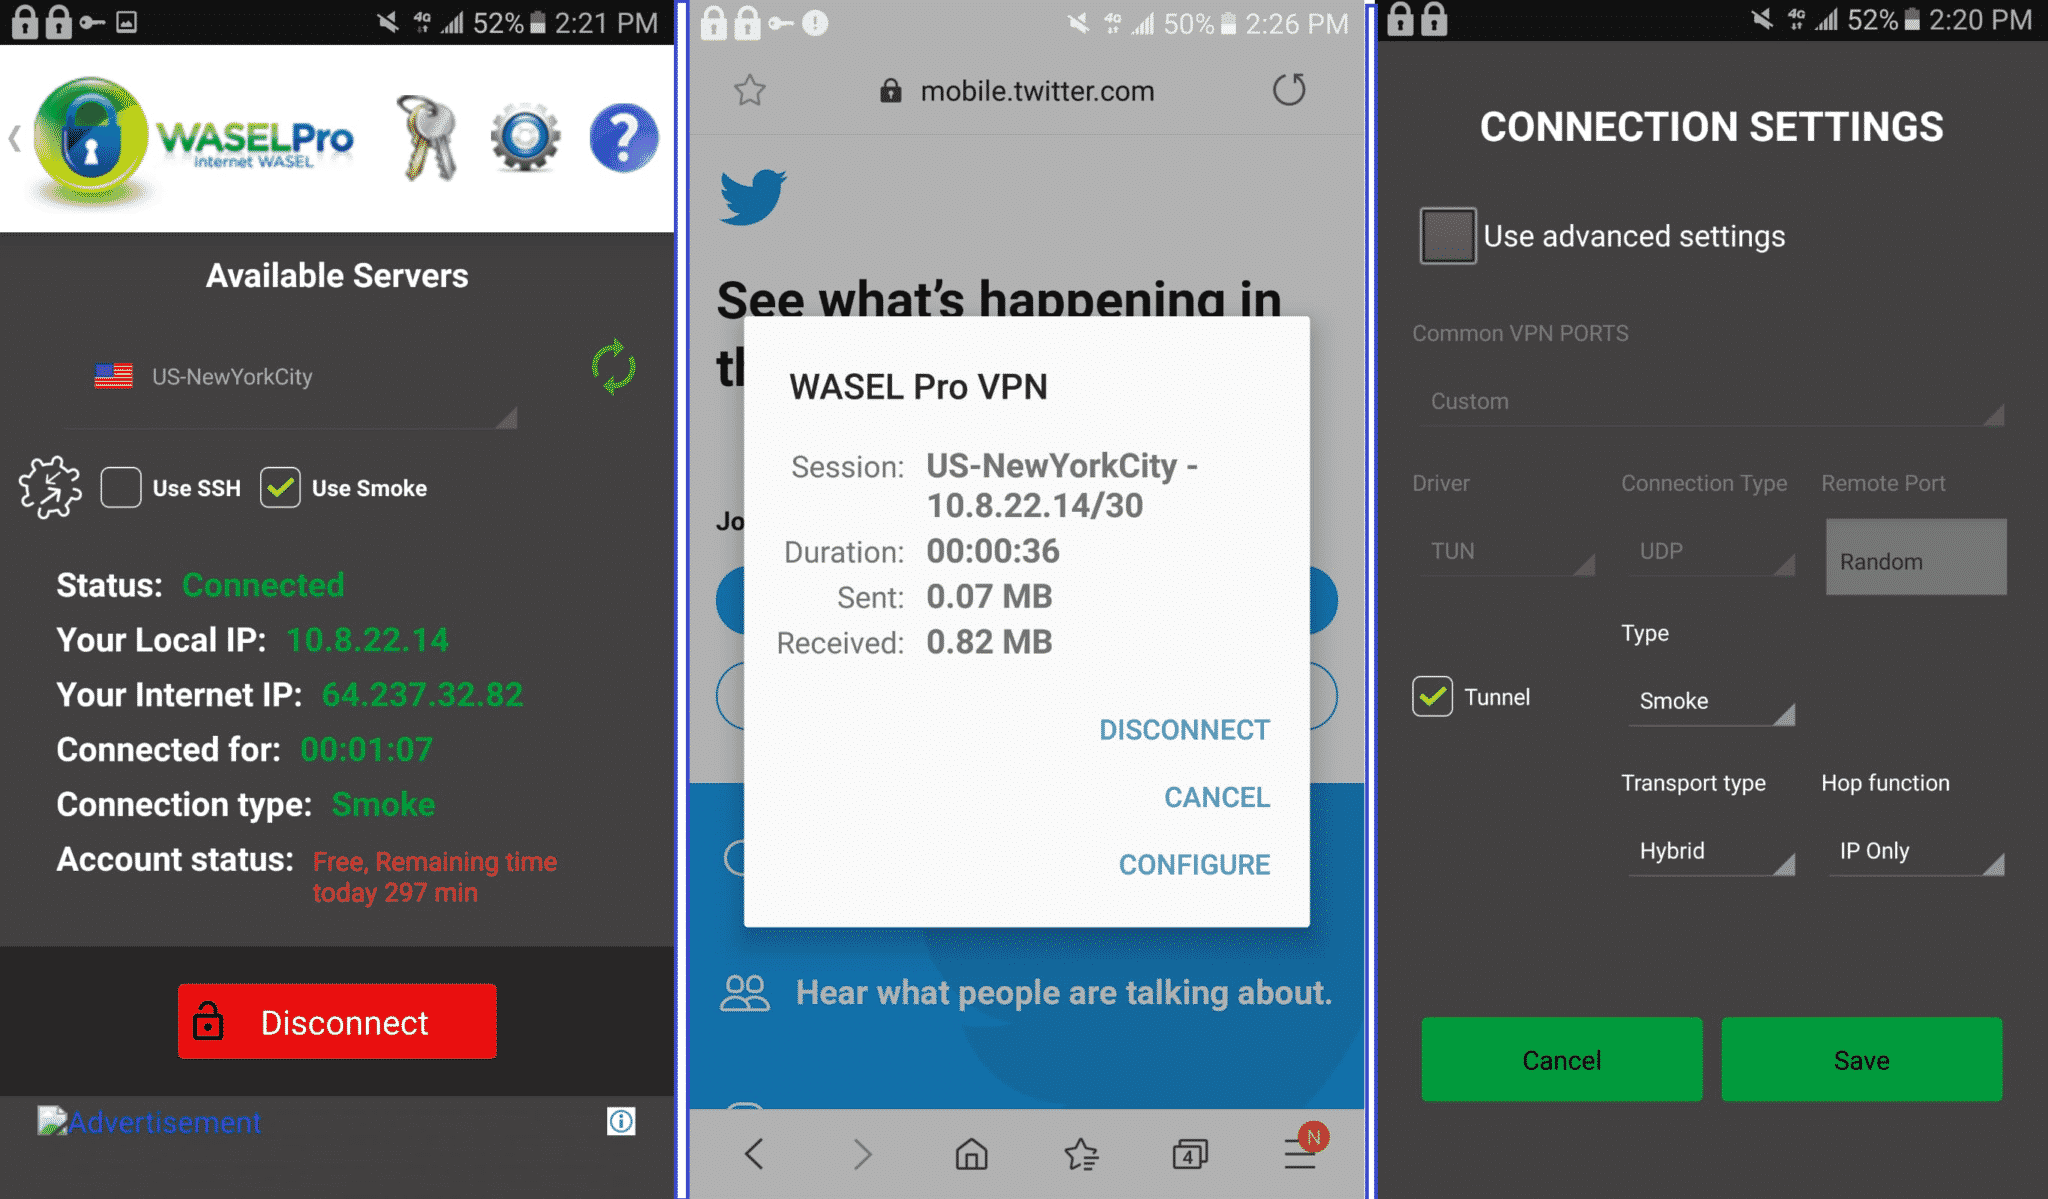 WaselPro Android tests